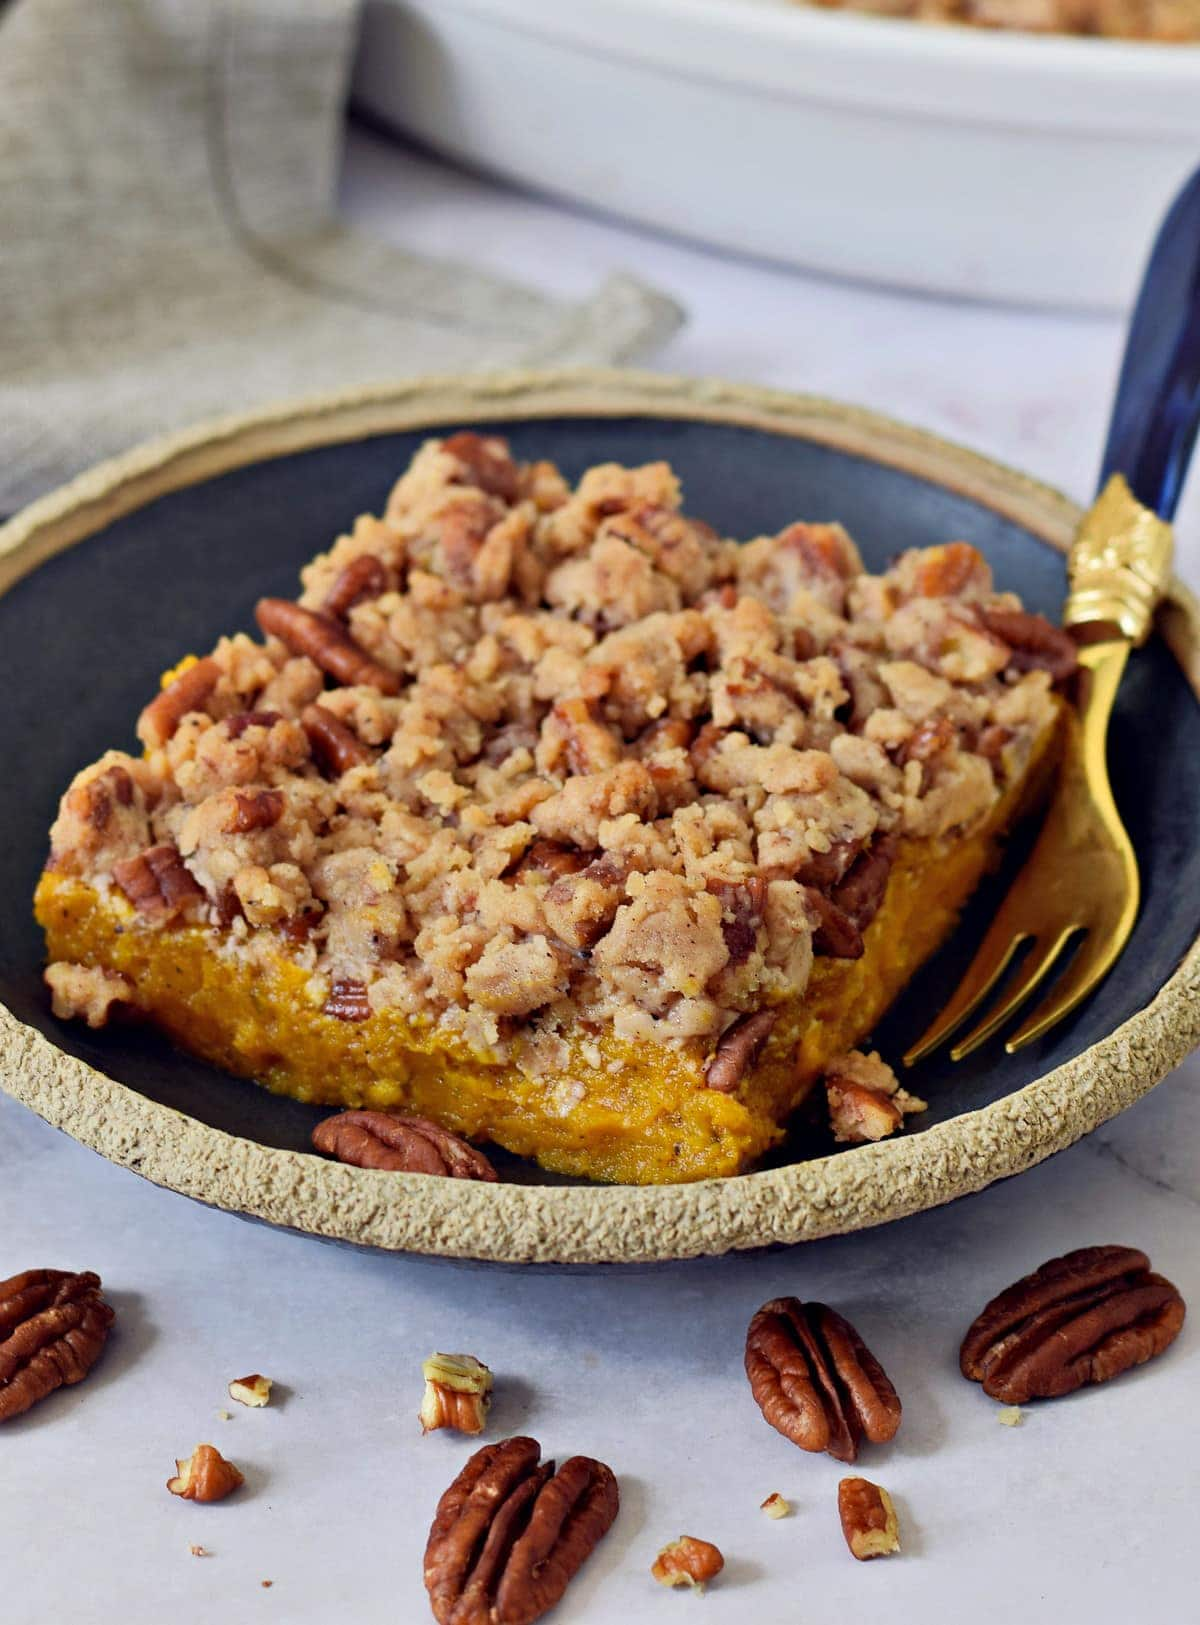 A piece of vegan sweet potato casserole with crumble pecan topping on black plate with fork